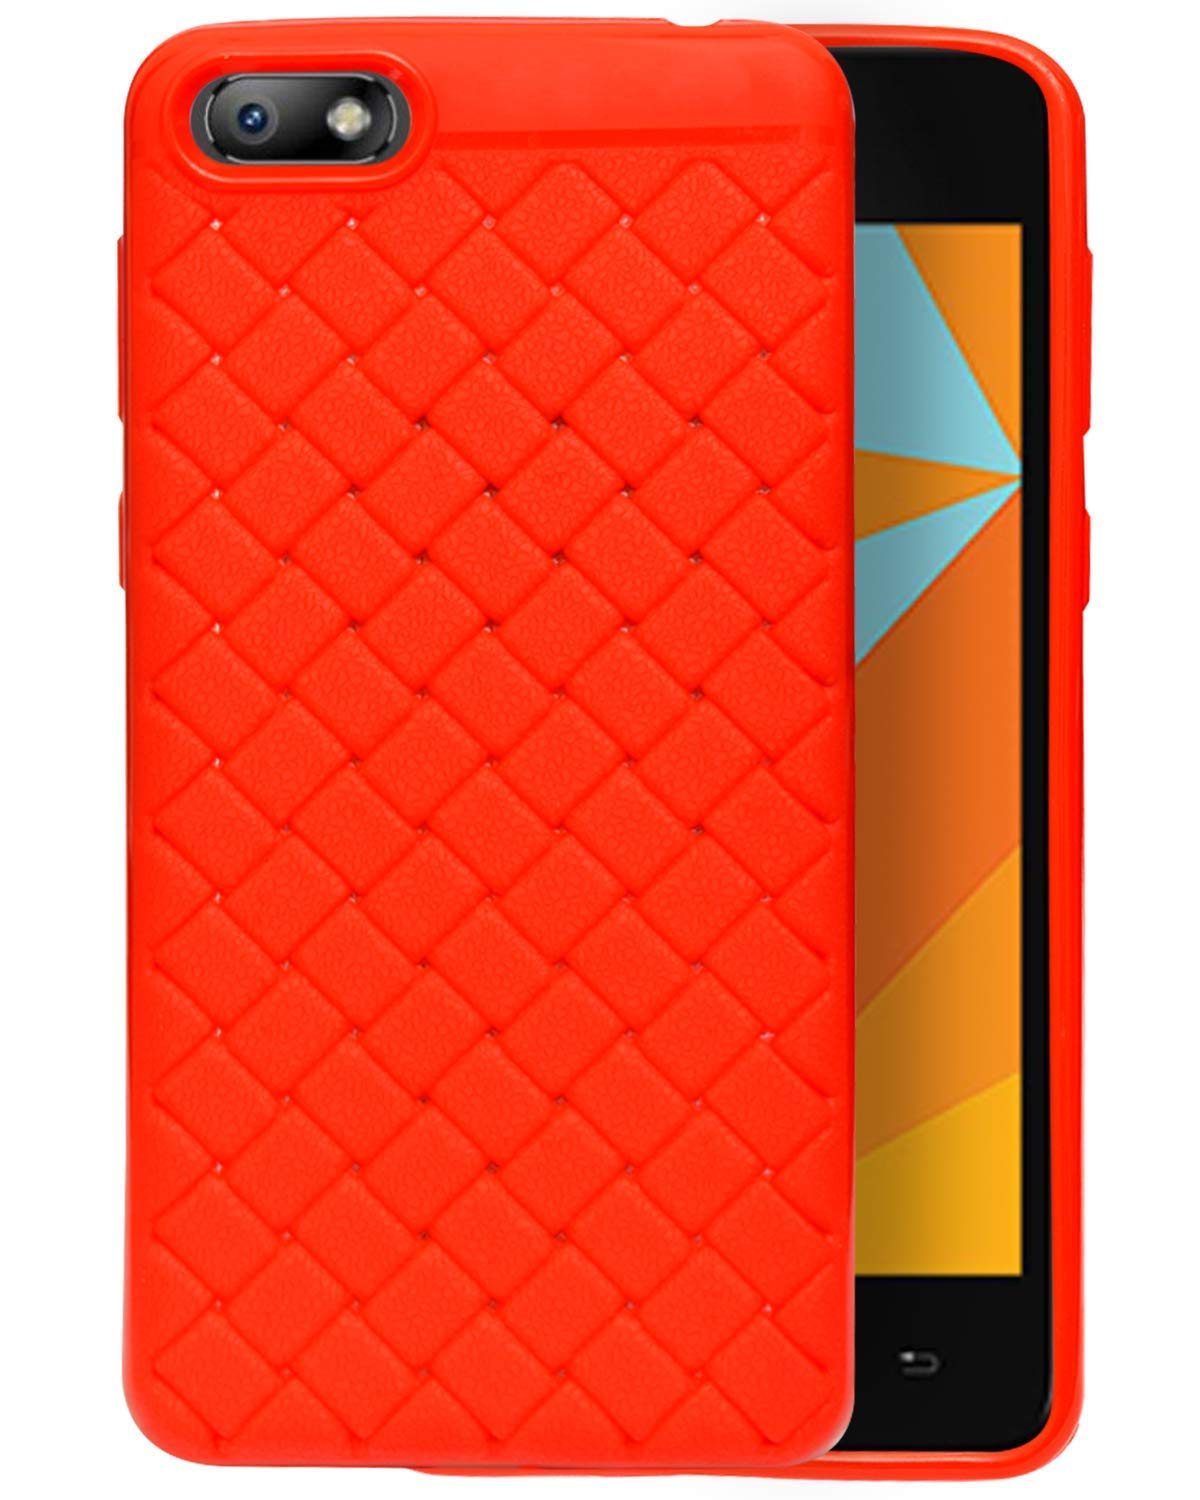 Micromax Bharat 5 Plus Texture Pattern Soft Cusion Padding Case Back Cover - Red